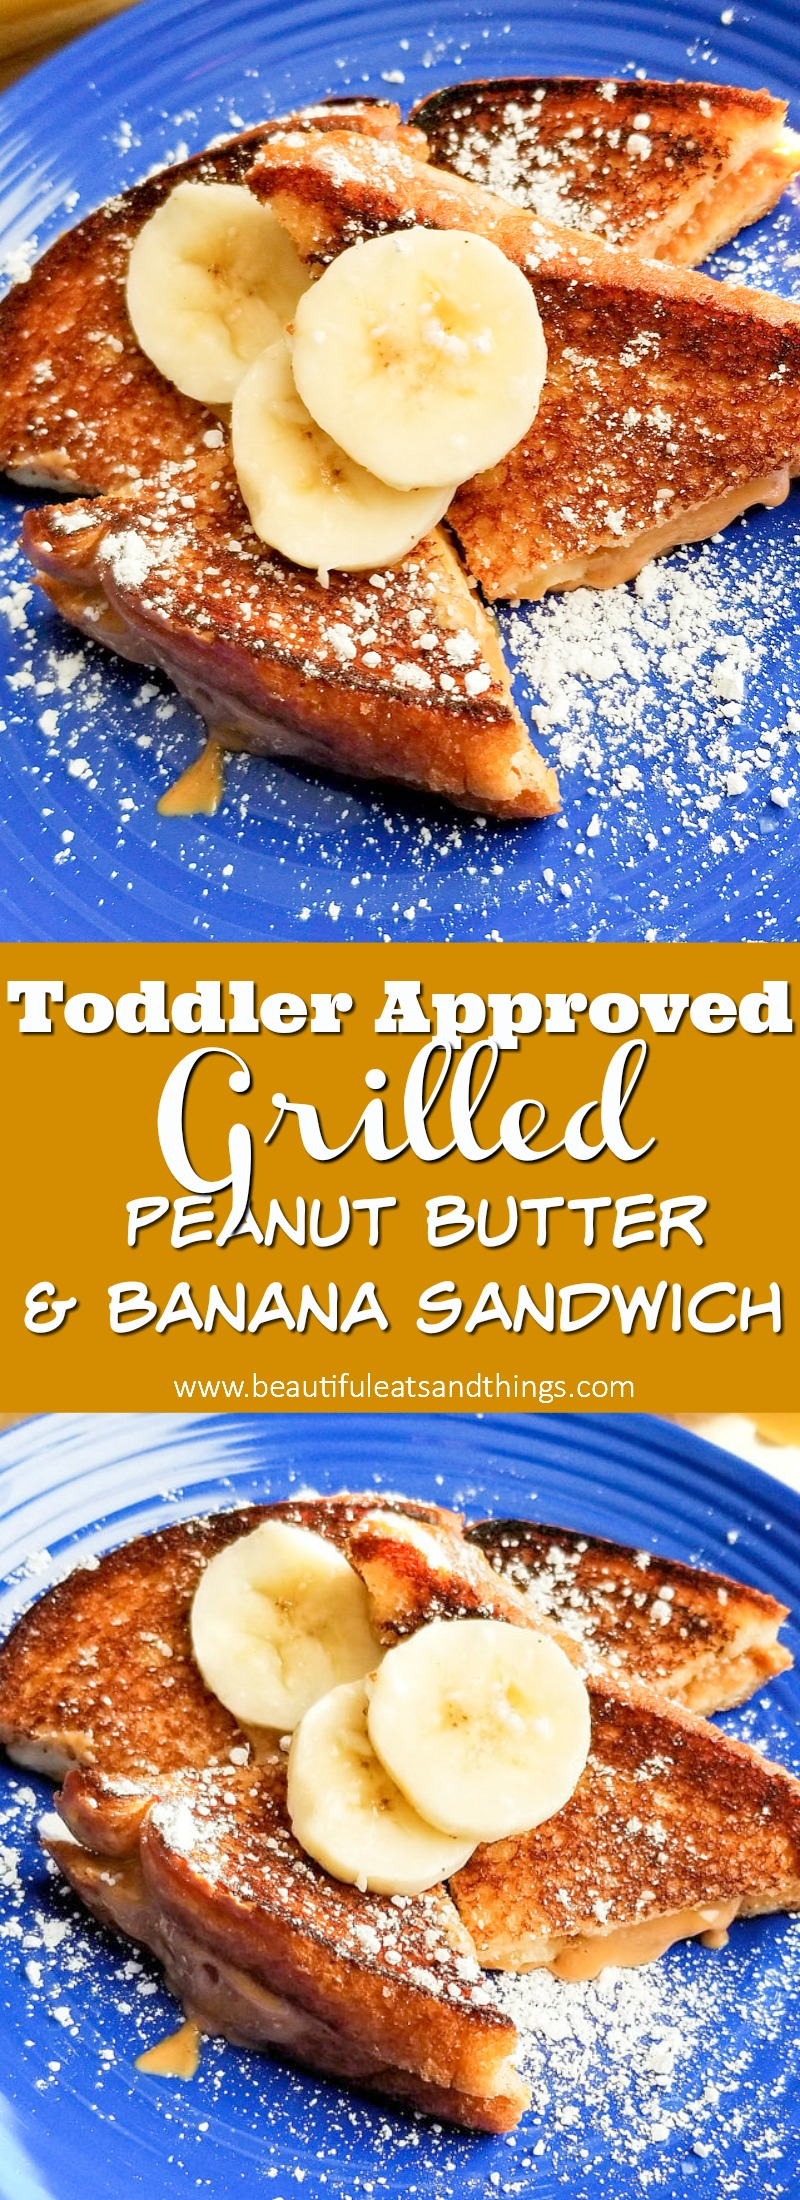 Grilled Peanut Butter & Banana Sandwich